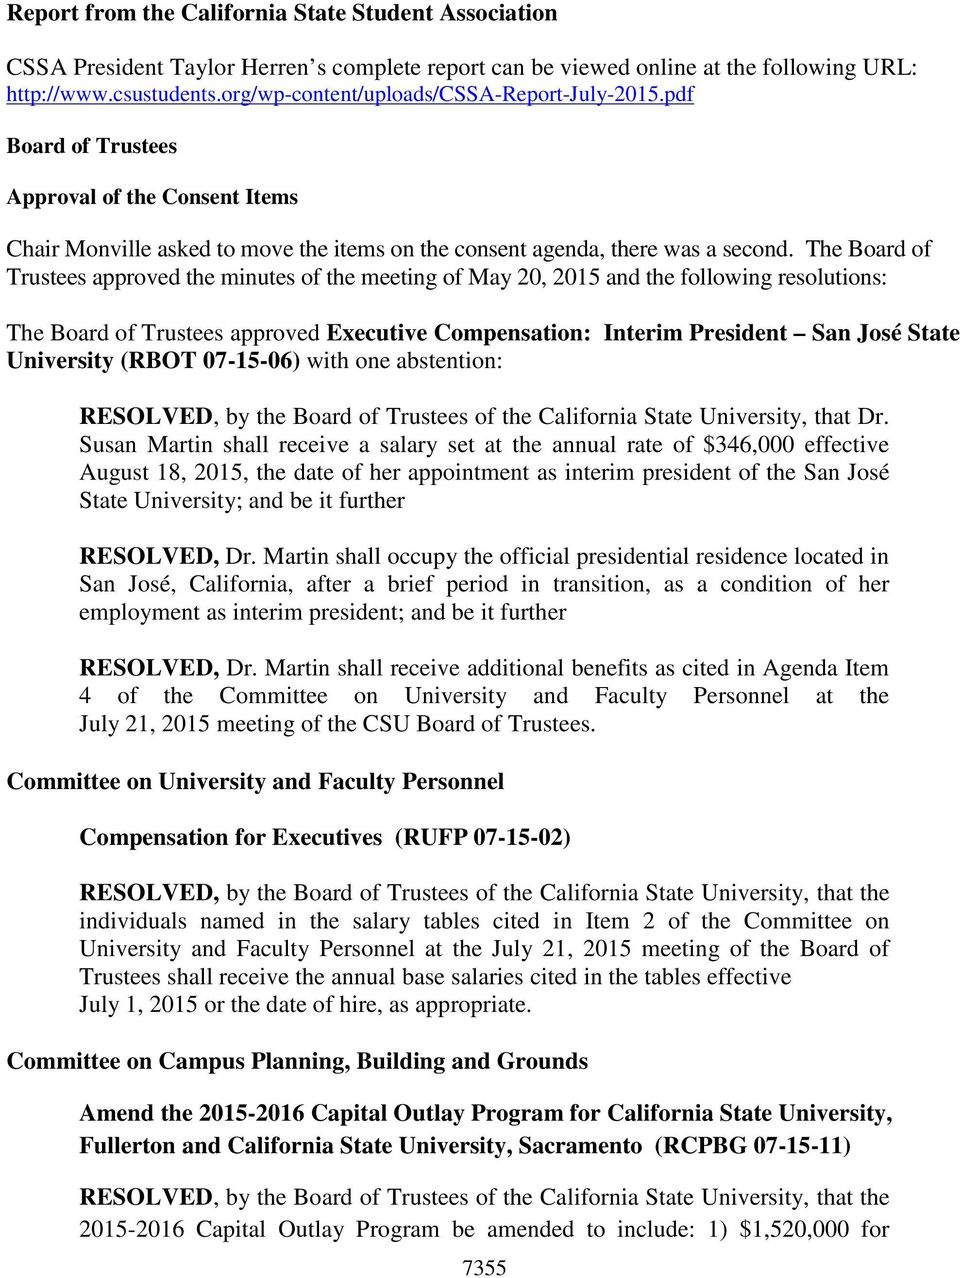 The Board of Trustees approved the minutes of the meeting of May 20, 2015 and the following resolutions: The Board of Trustees approved Executive Compensation: Interim President San José State